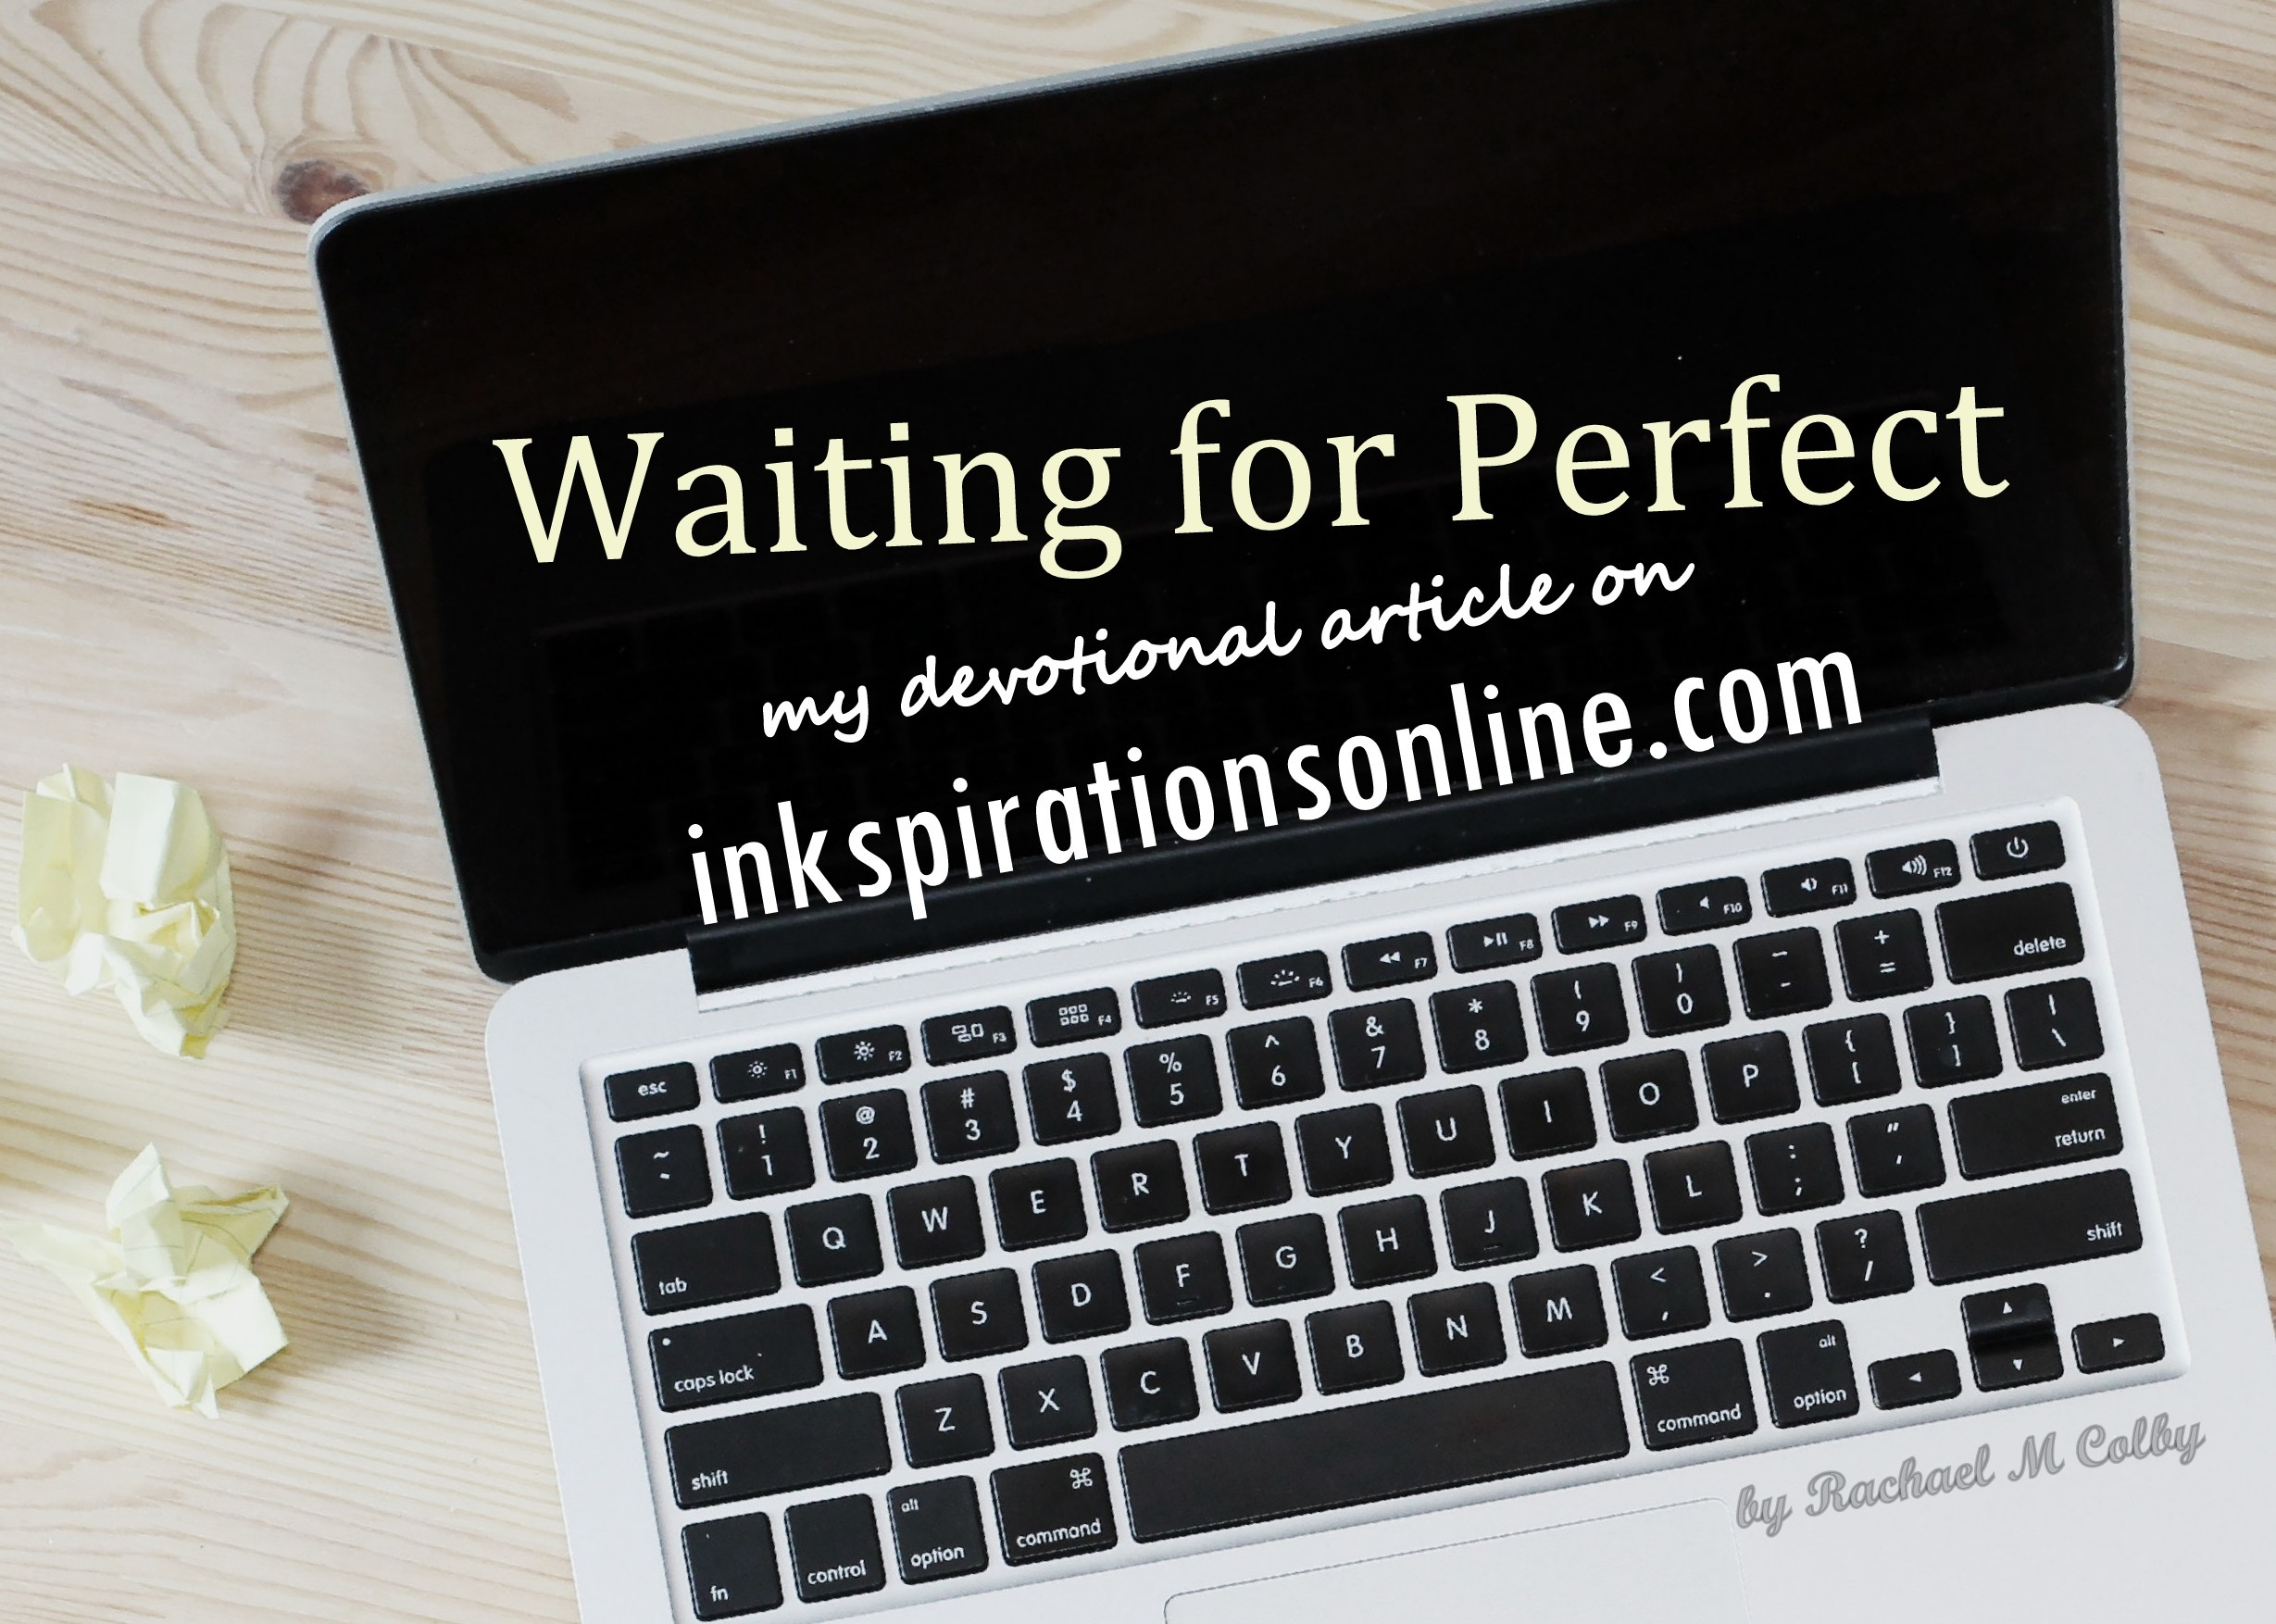 Rachael_M_Colby_Inkspirations_Online_Waiting_for_Perfect